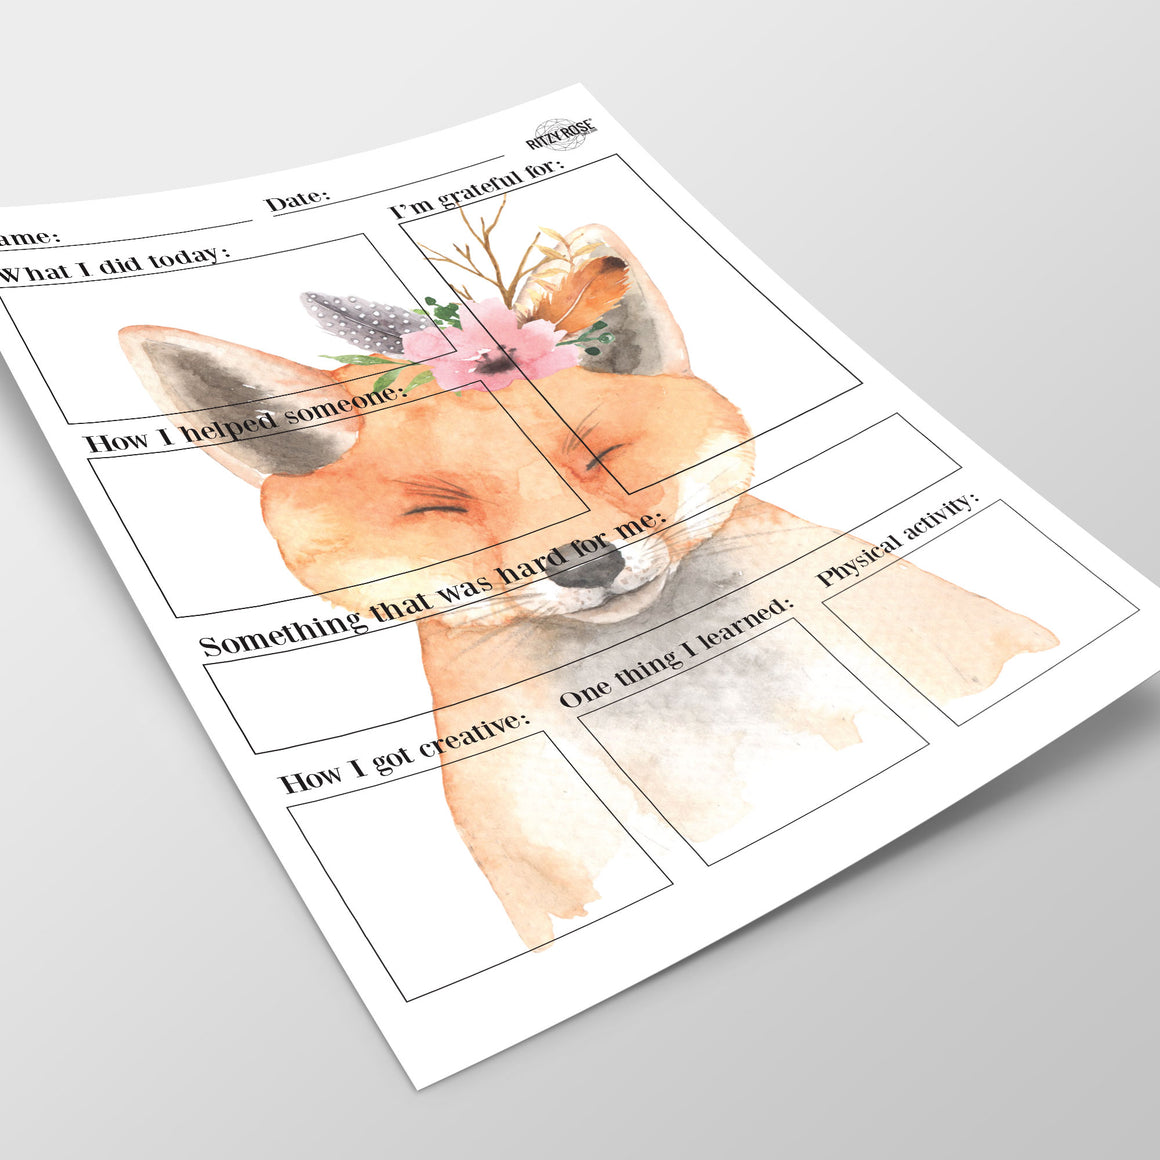 Daily Journal for Children (Floral Fox) - Digital Download